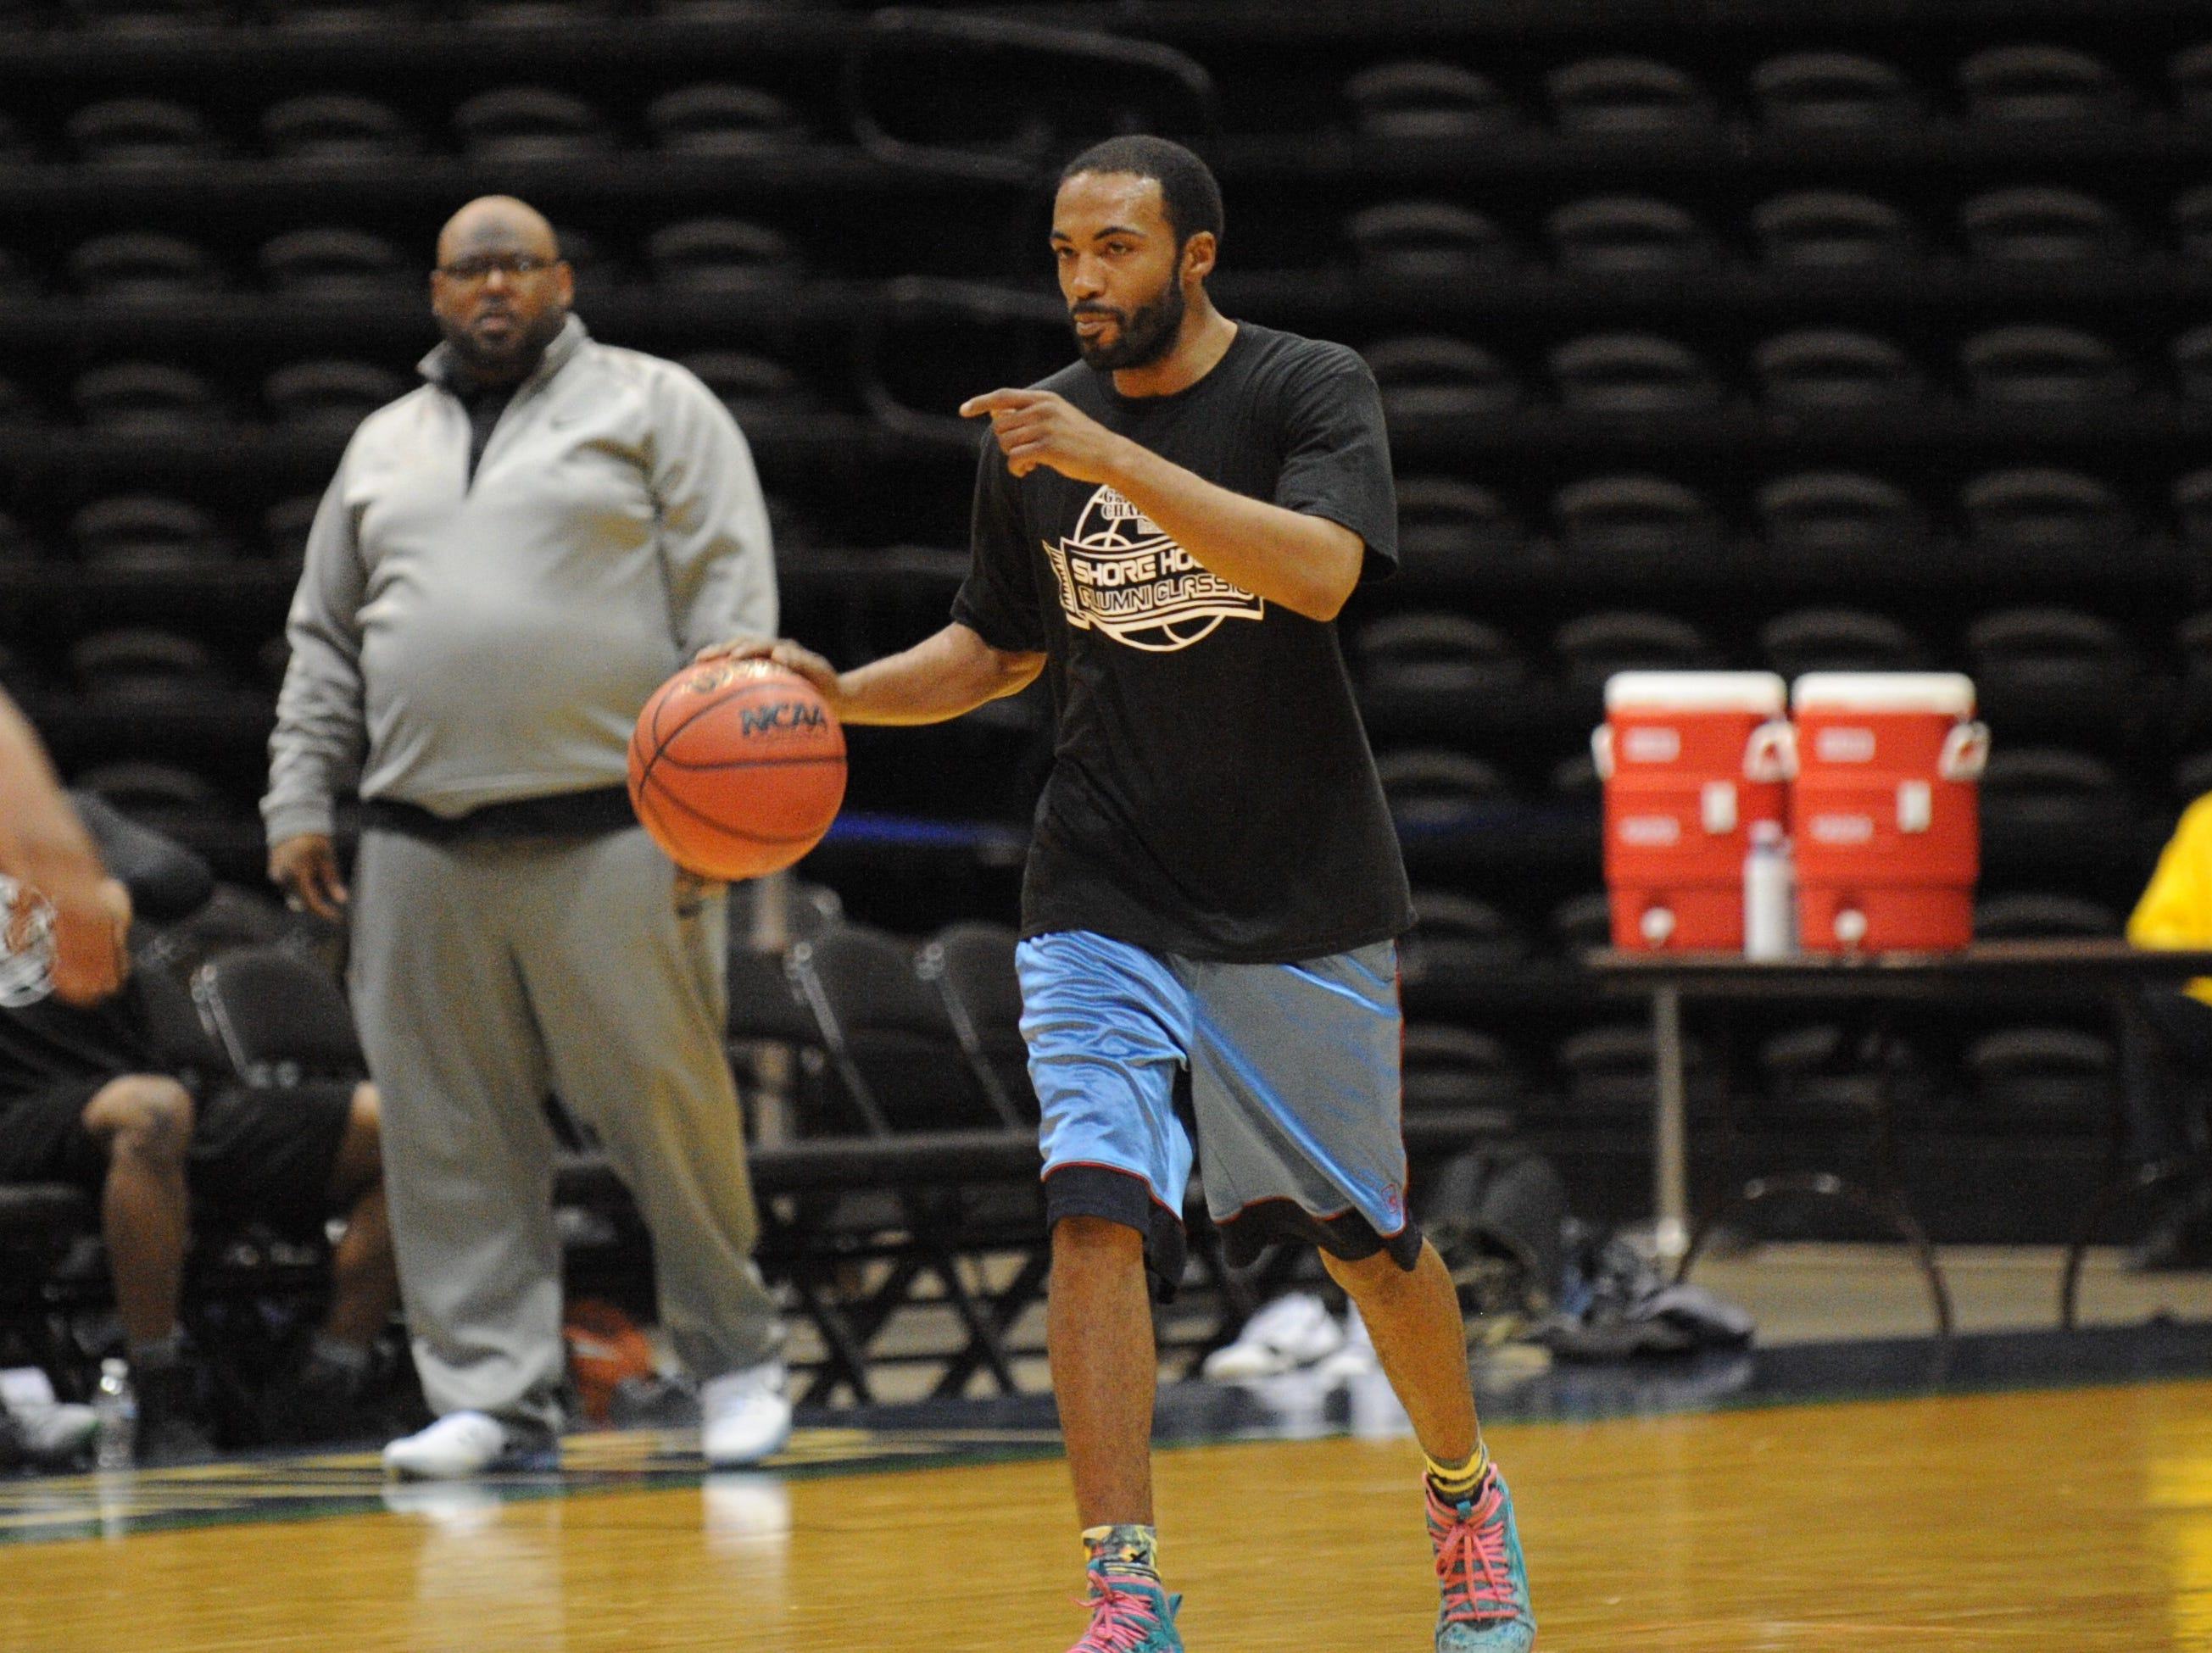 A member of the 2001/2008 Snow Hill basketball team takes the ball down the court at the first ever Shore Hoops Alumni Classic on Saturday, Dec. 22, 2018.